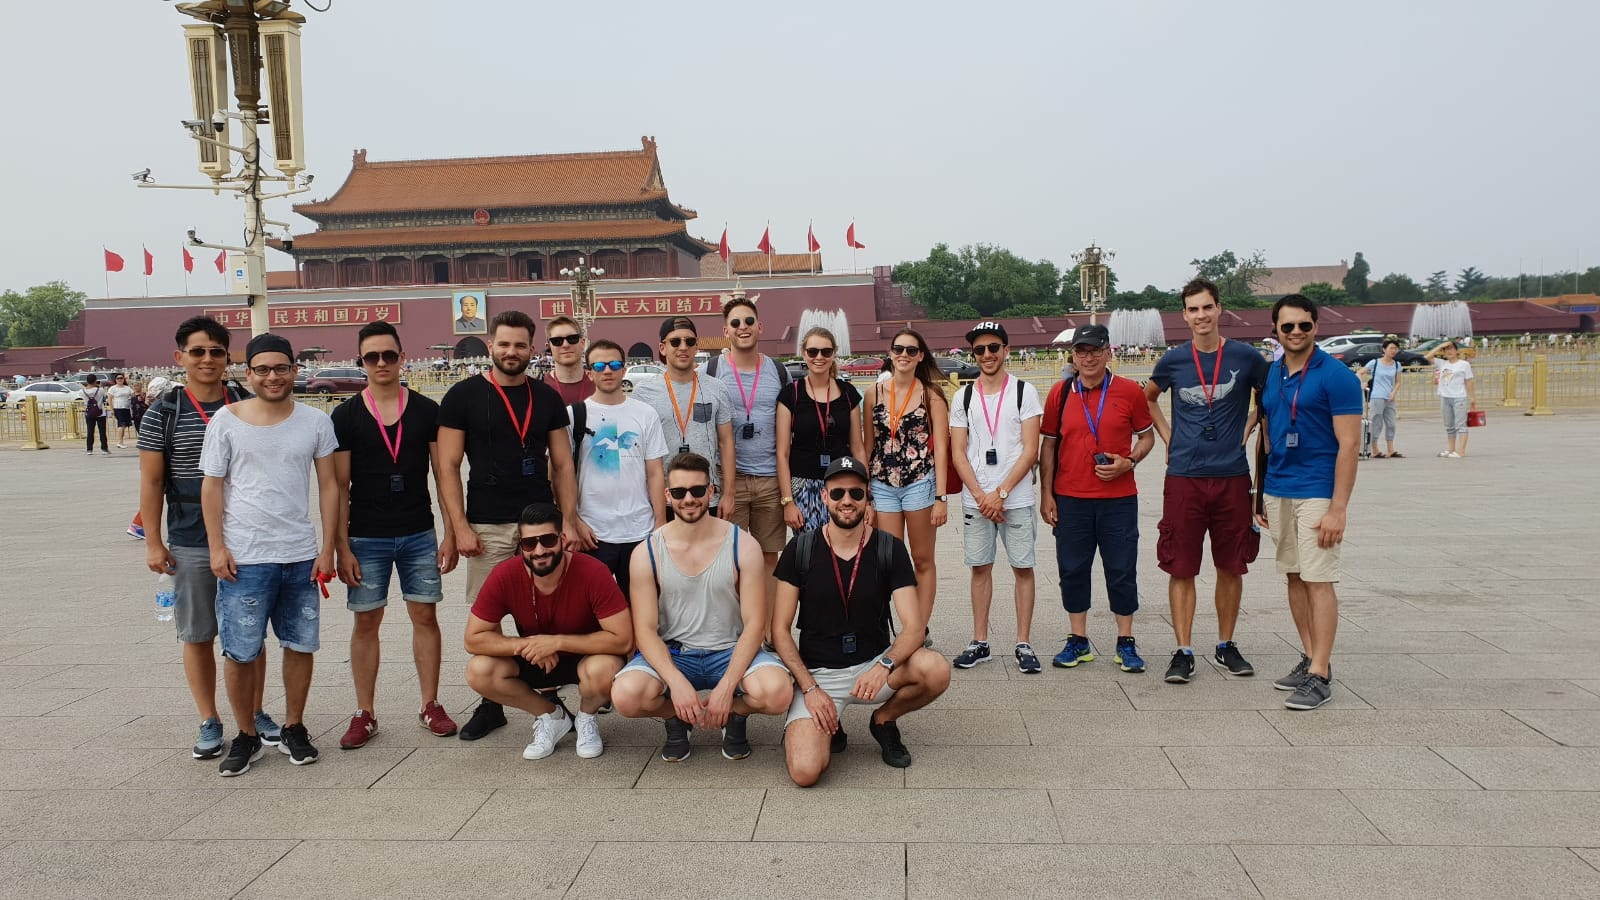 Tian'anmen Square Group Photo